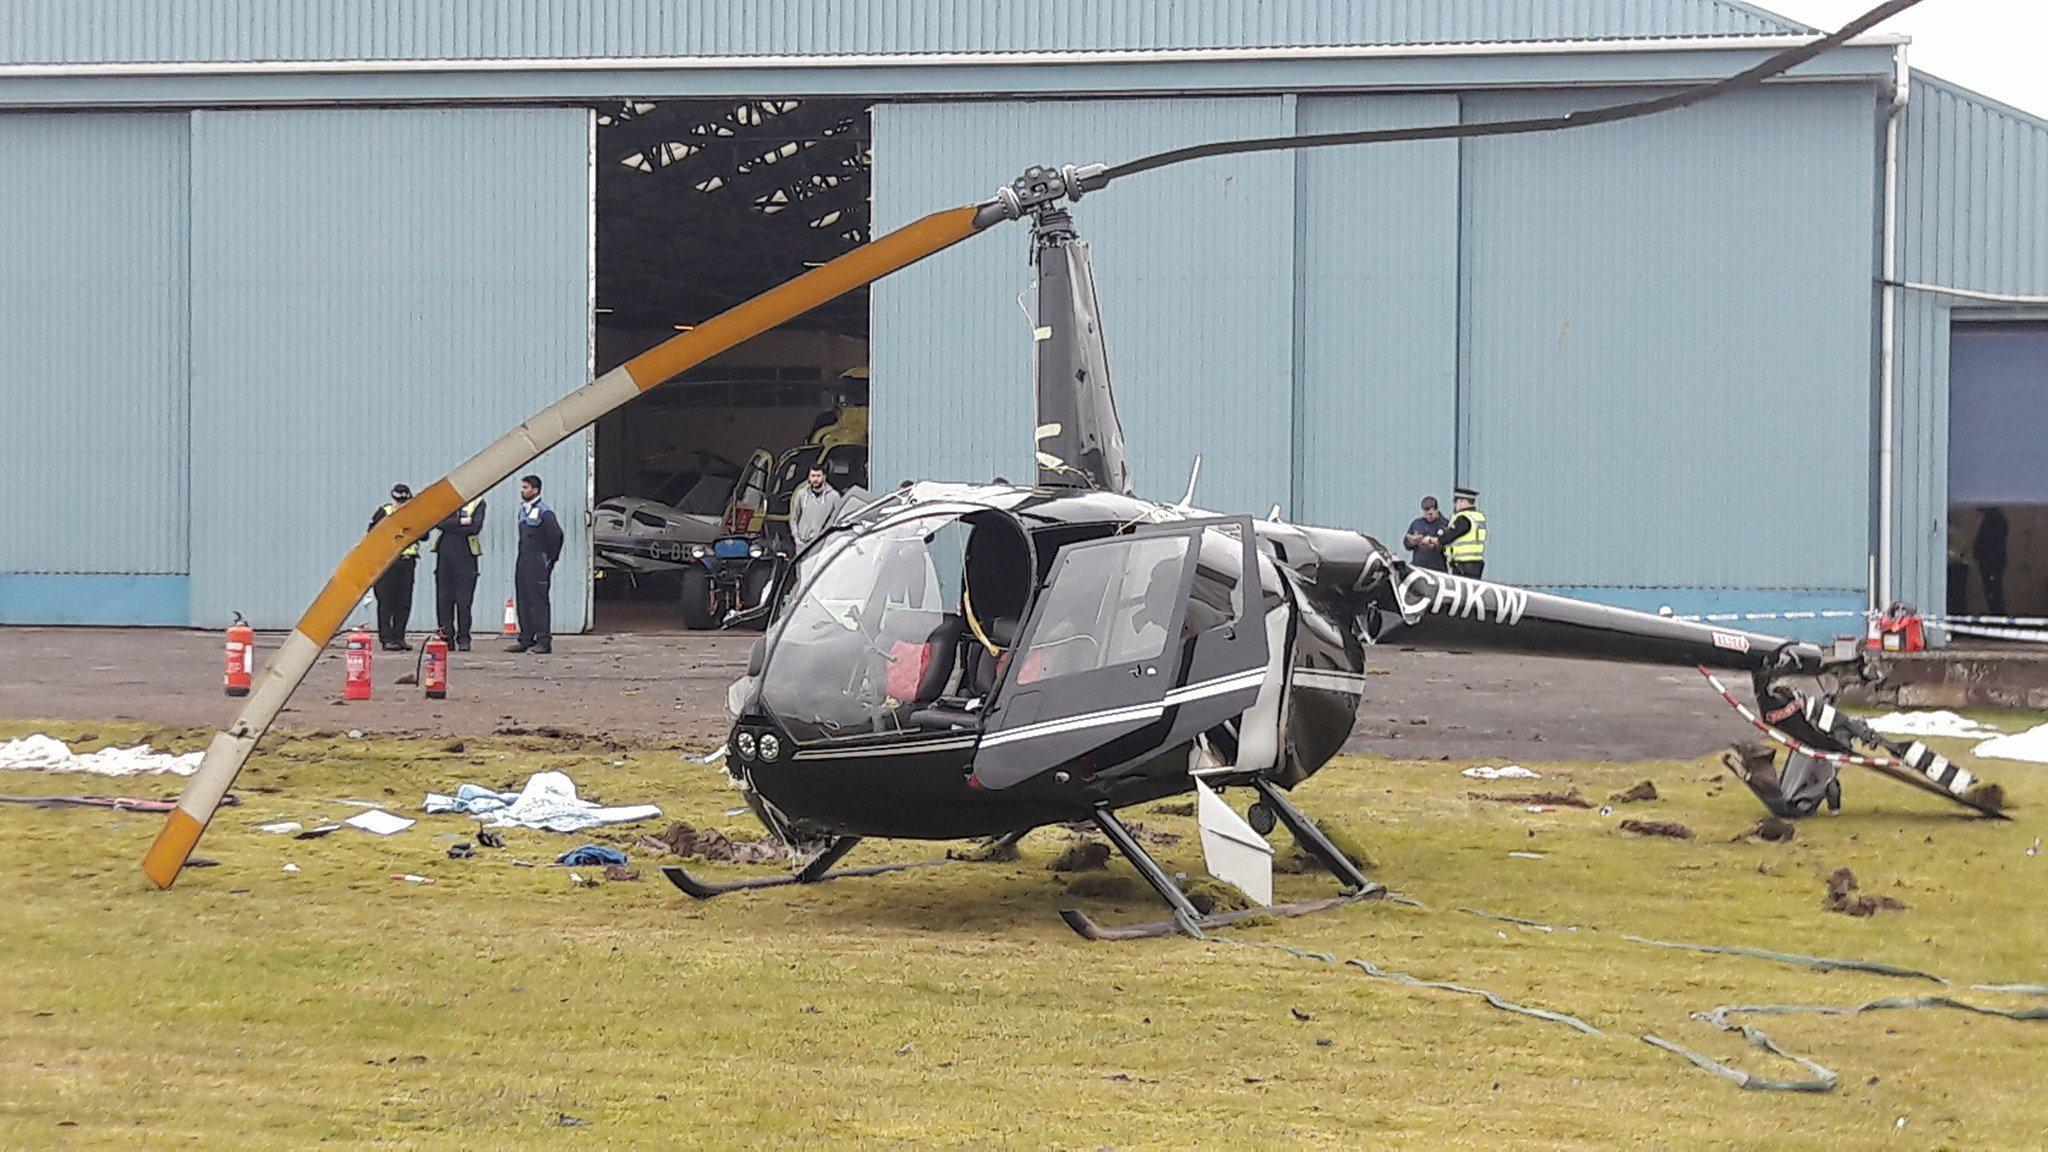 Helicopter crashes at Air Ambulance base at Perth Airport